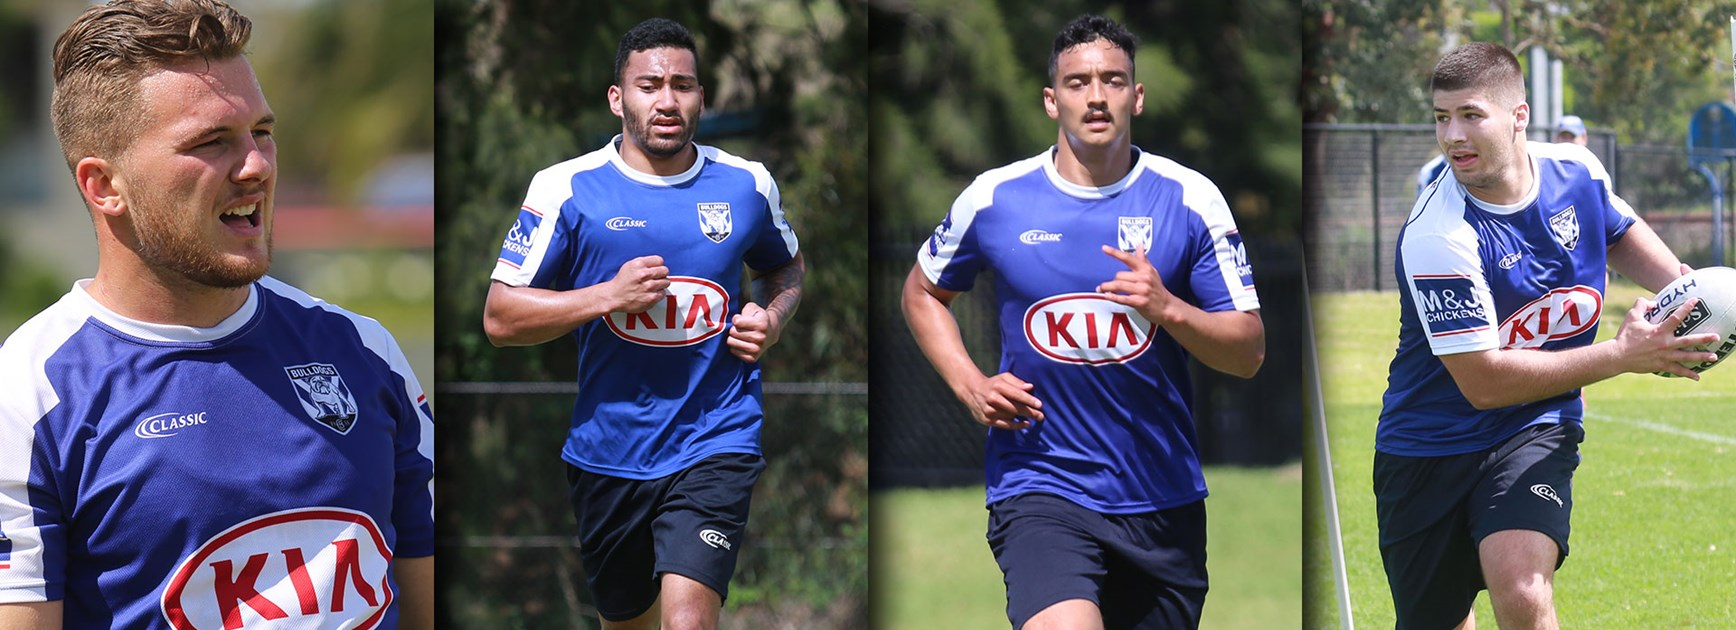 The Canterbury-Bankstown Bulldogs confirm the club's development players for 2019